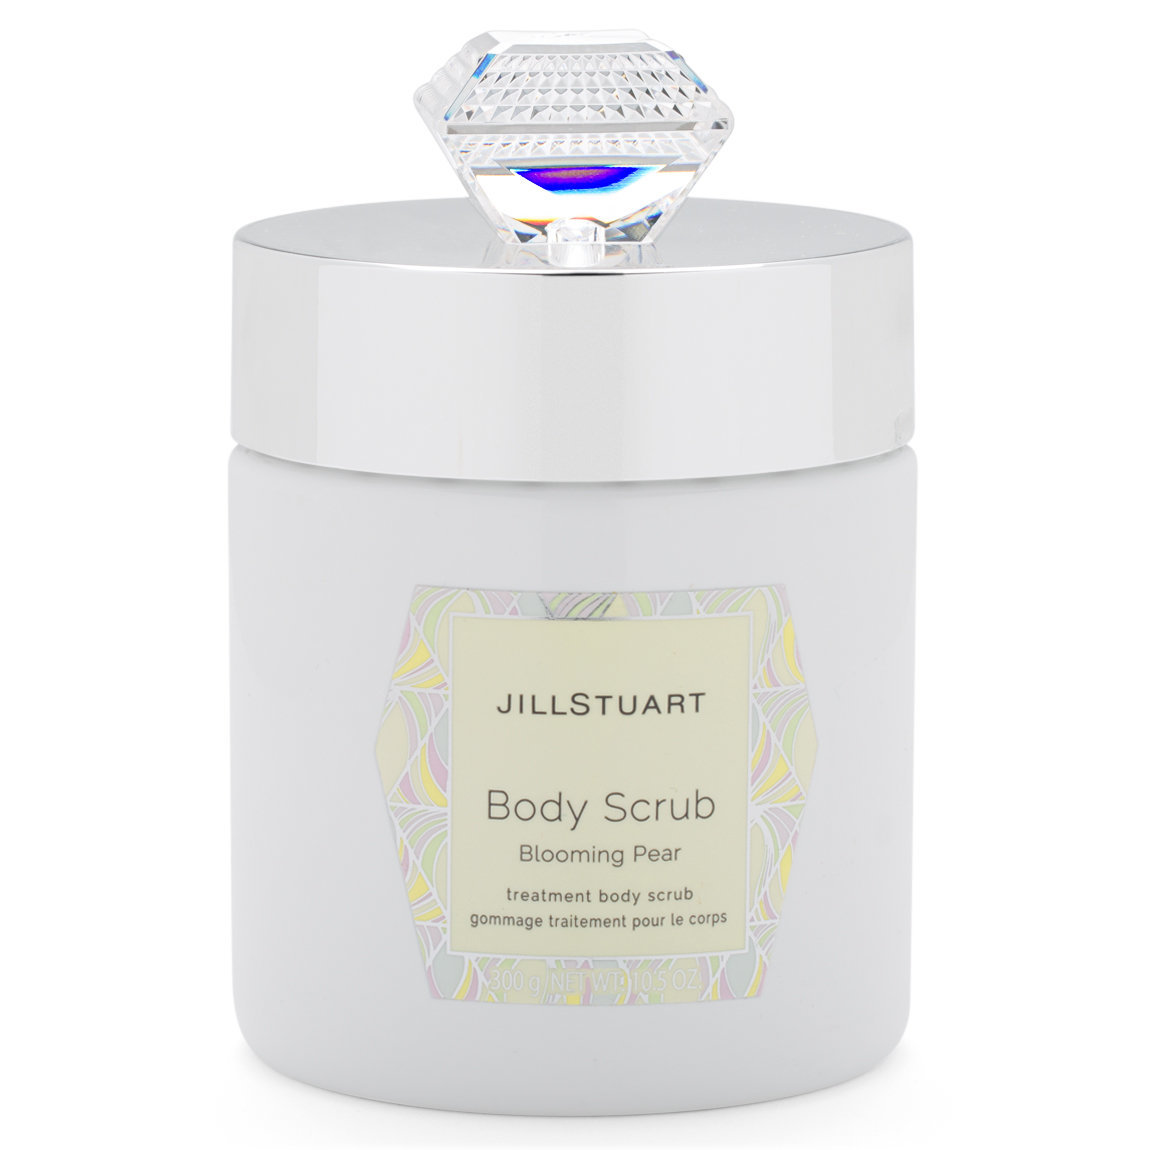 JILL STUART Beauty Body Scrub Blooming Pear product swatch.